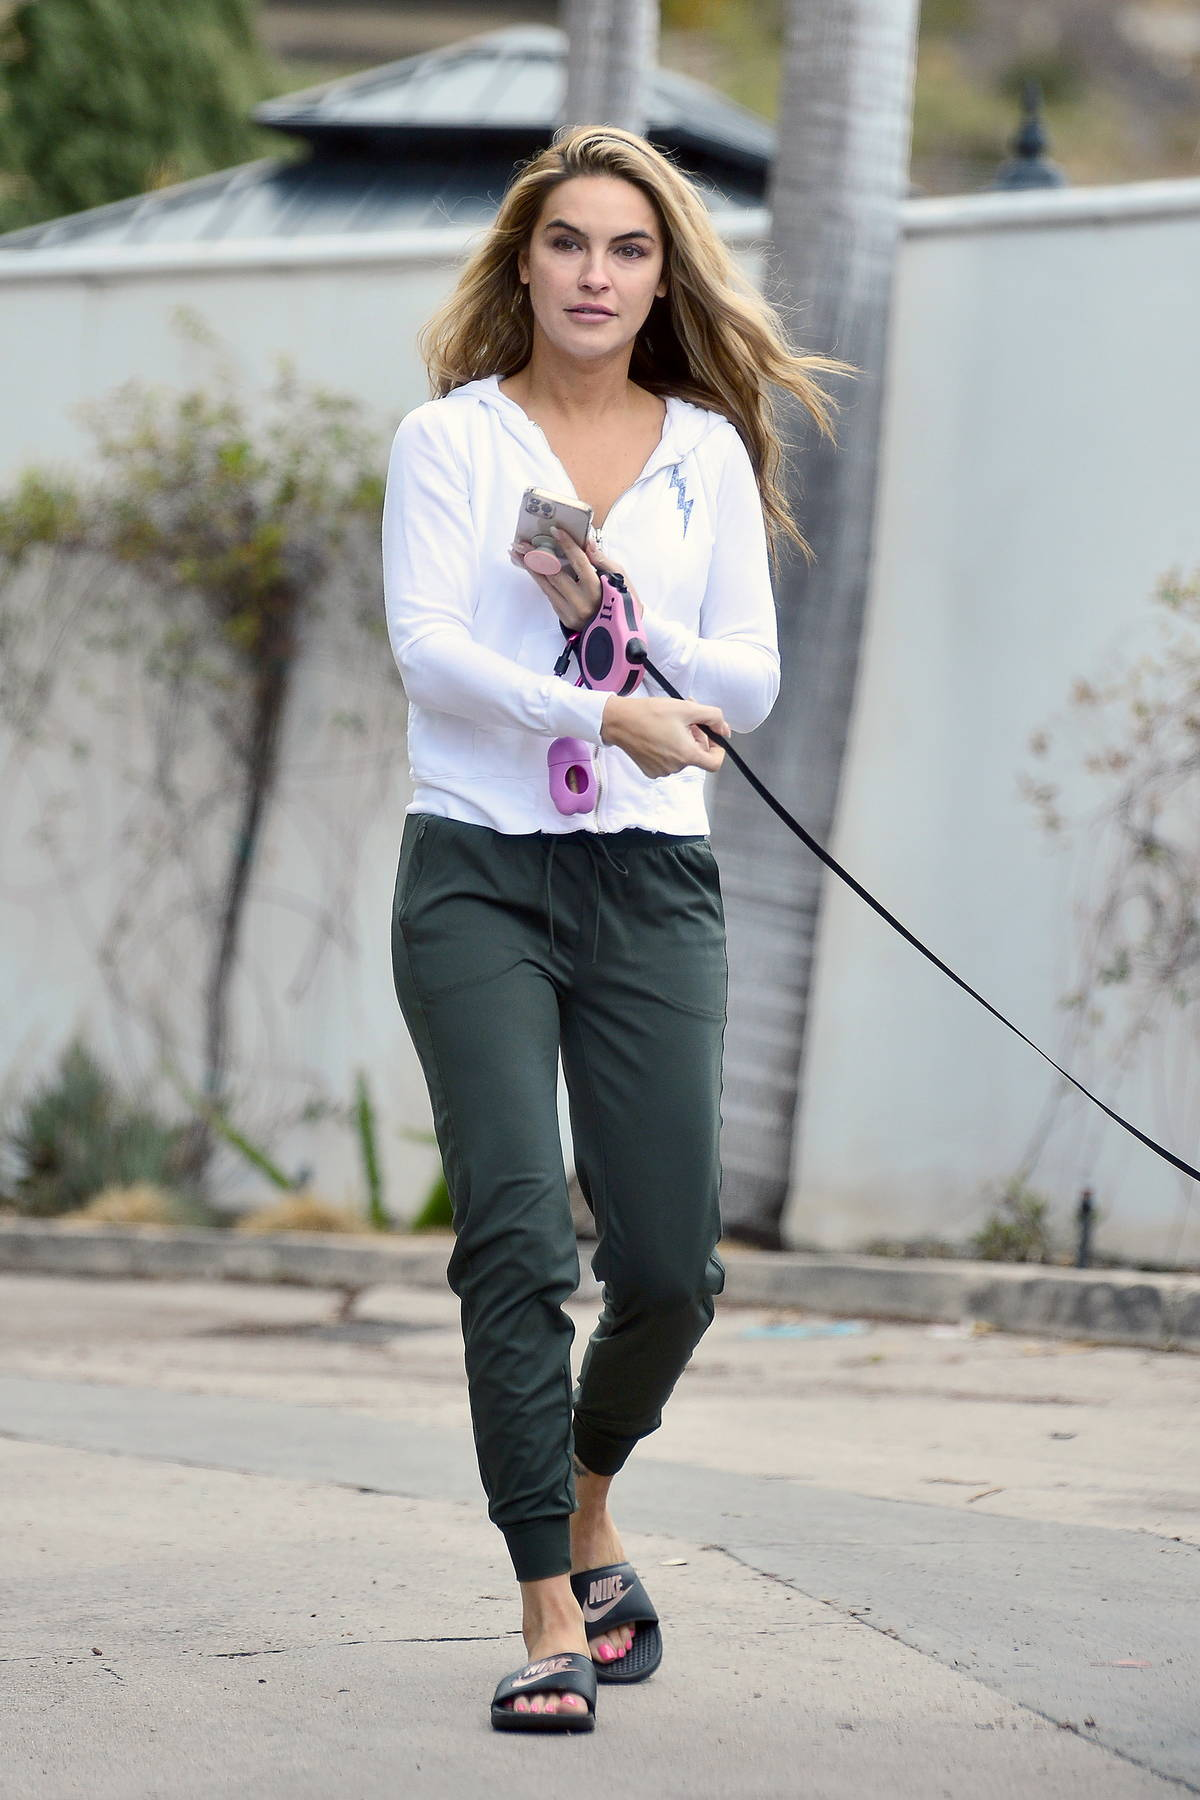 Chrishell Stause seen for the first time after splitting with Keo Motsepe as she steps out to walk her dog in Los Angeles